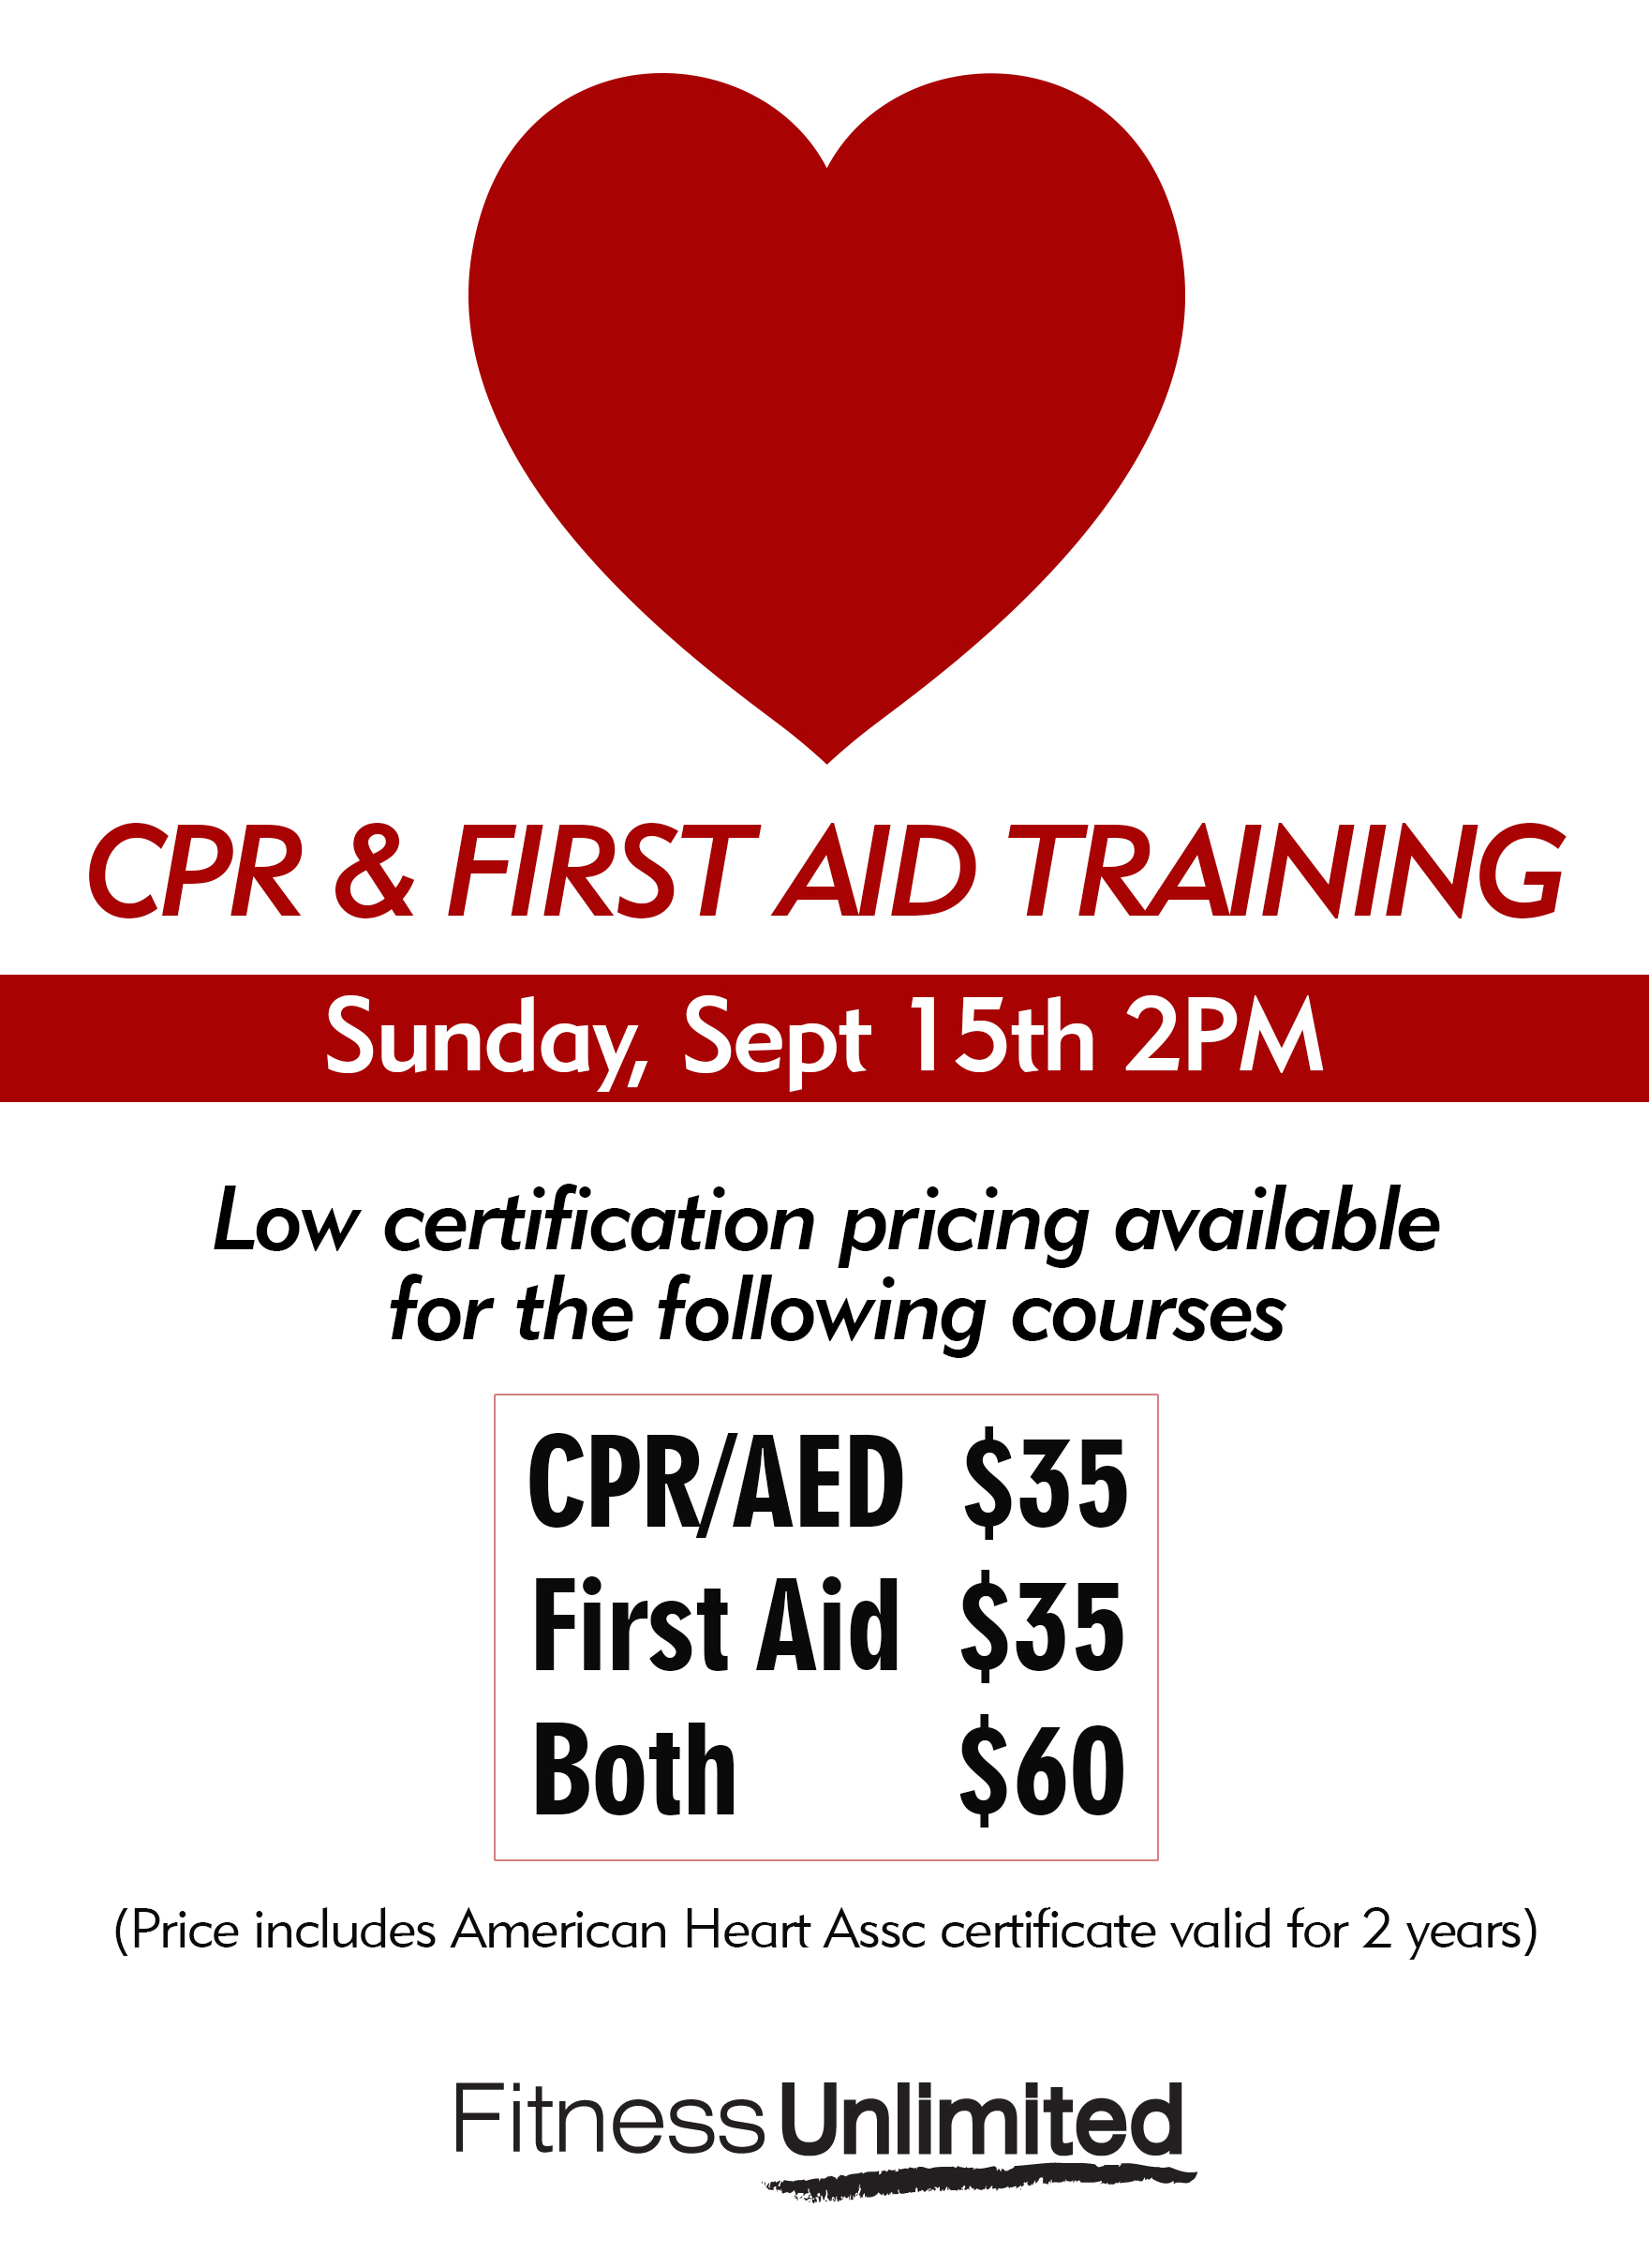 Get cpr first aid training fitness unlimited need to get your cpr and first aid certification join us sunday september 15th at 2pm please sign up in advance at the front desk xflitez Choice Image